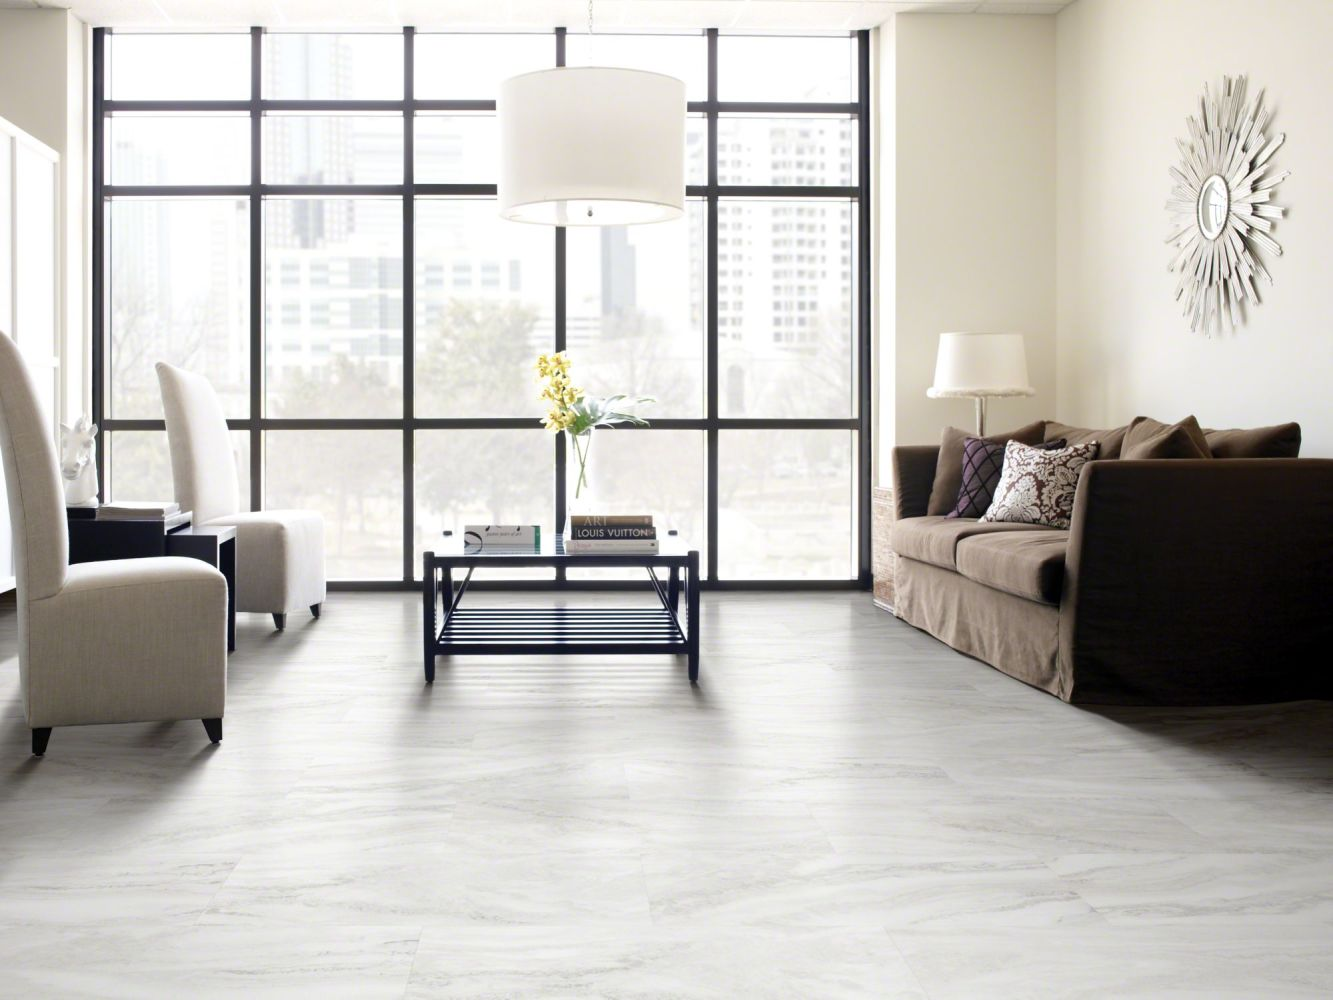 Shaw Floors 5th And Main Ocean Avenue Elite Casanova 00111_5M201